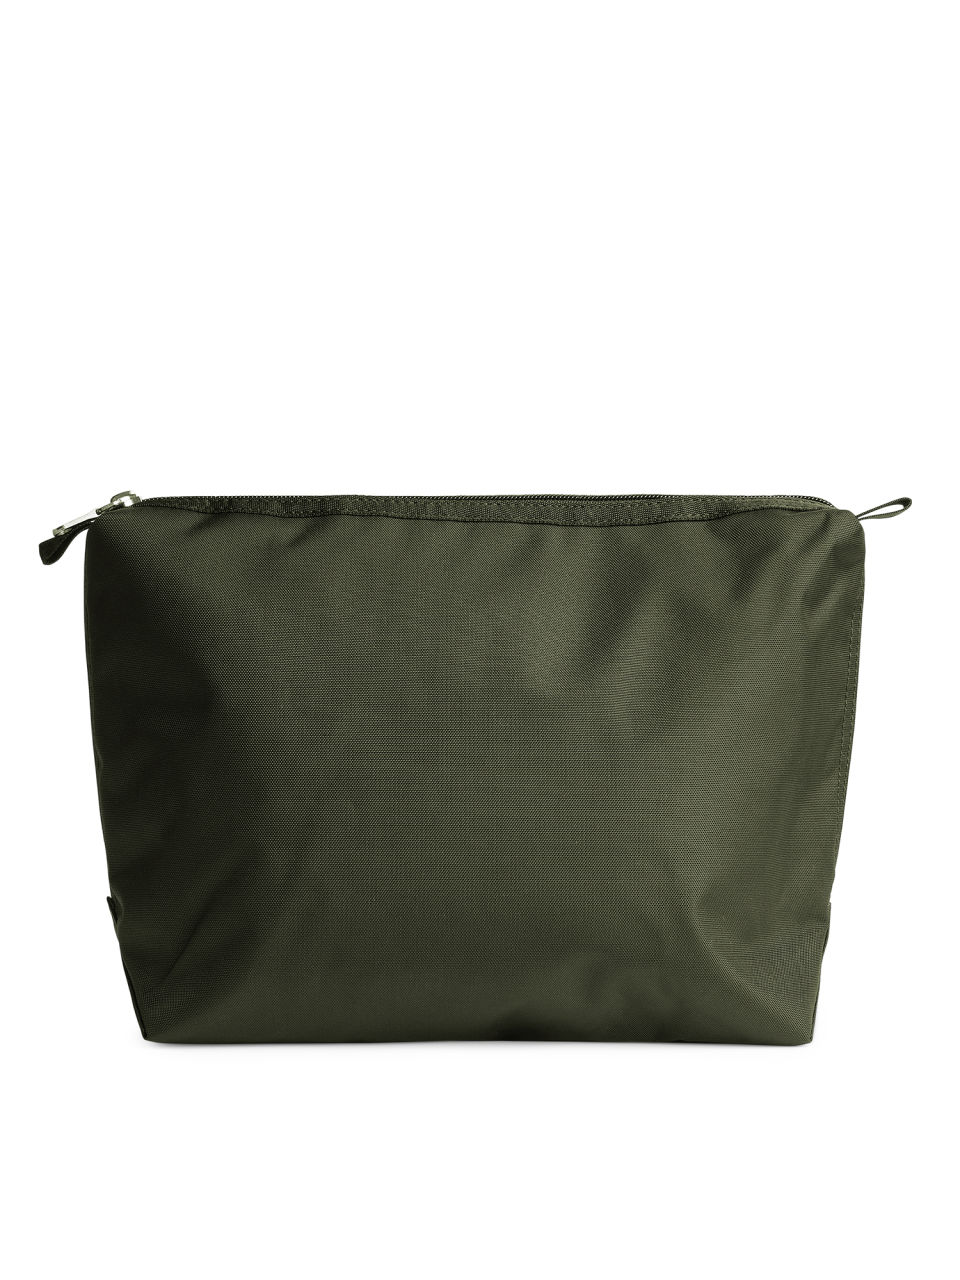 Front image of Arket large toiletry bag in green